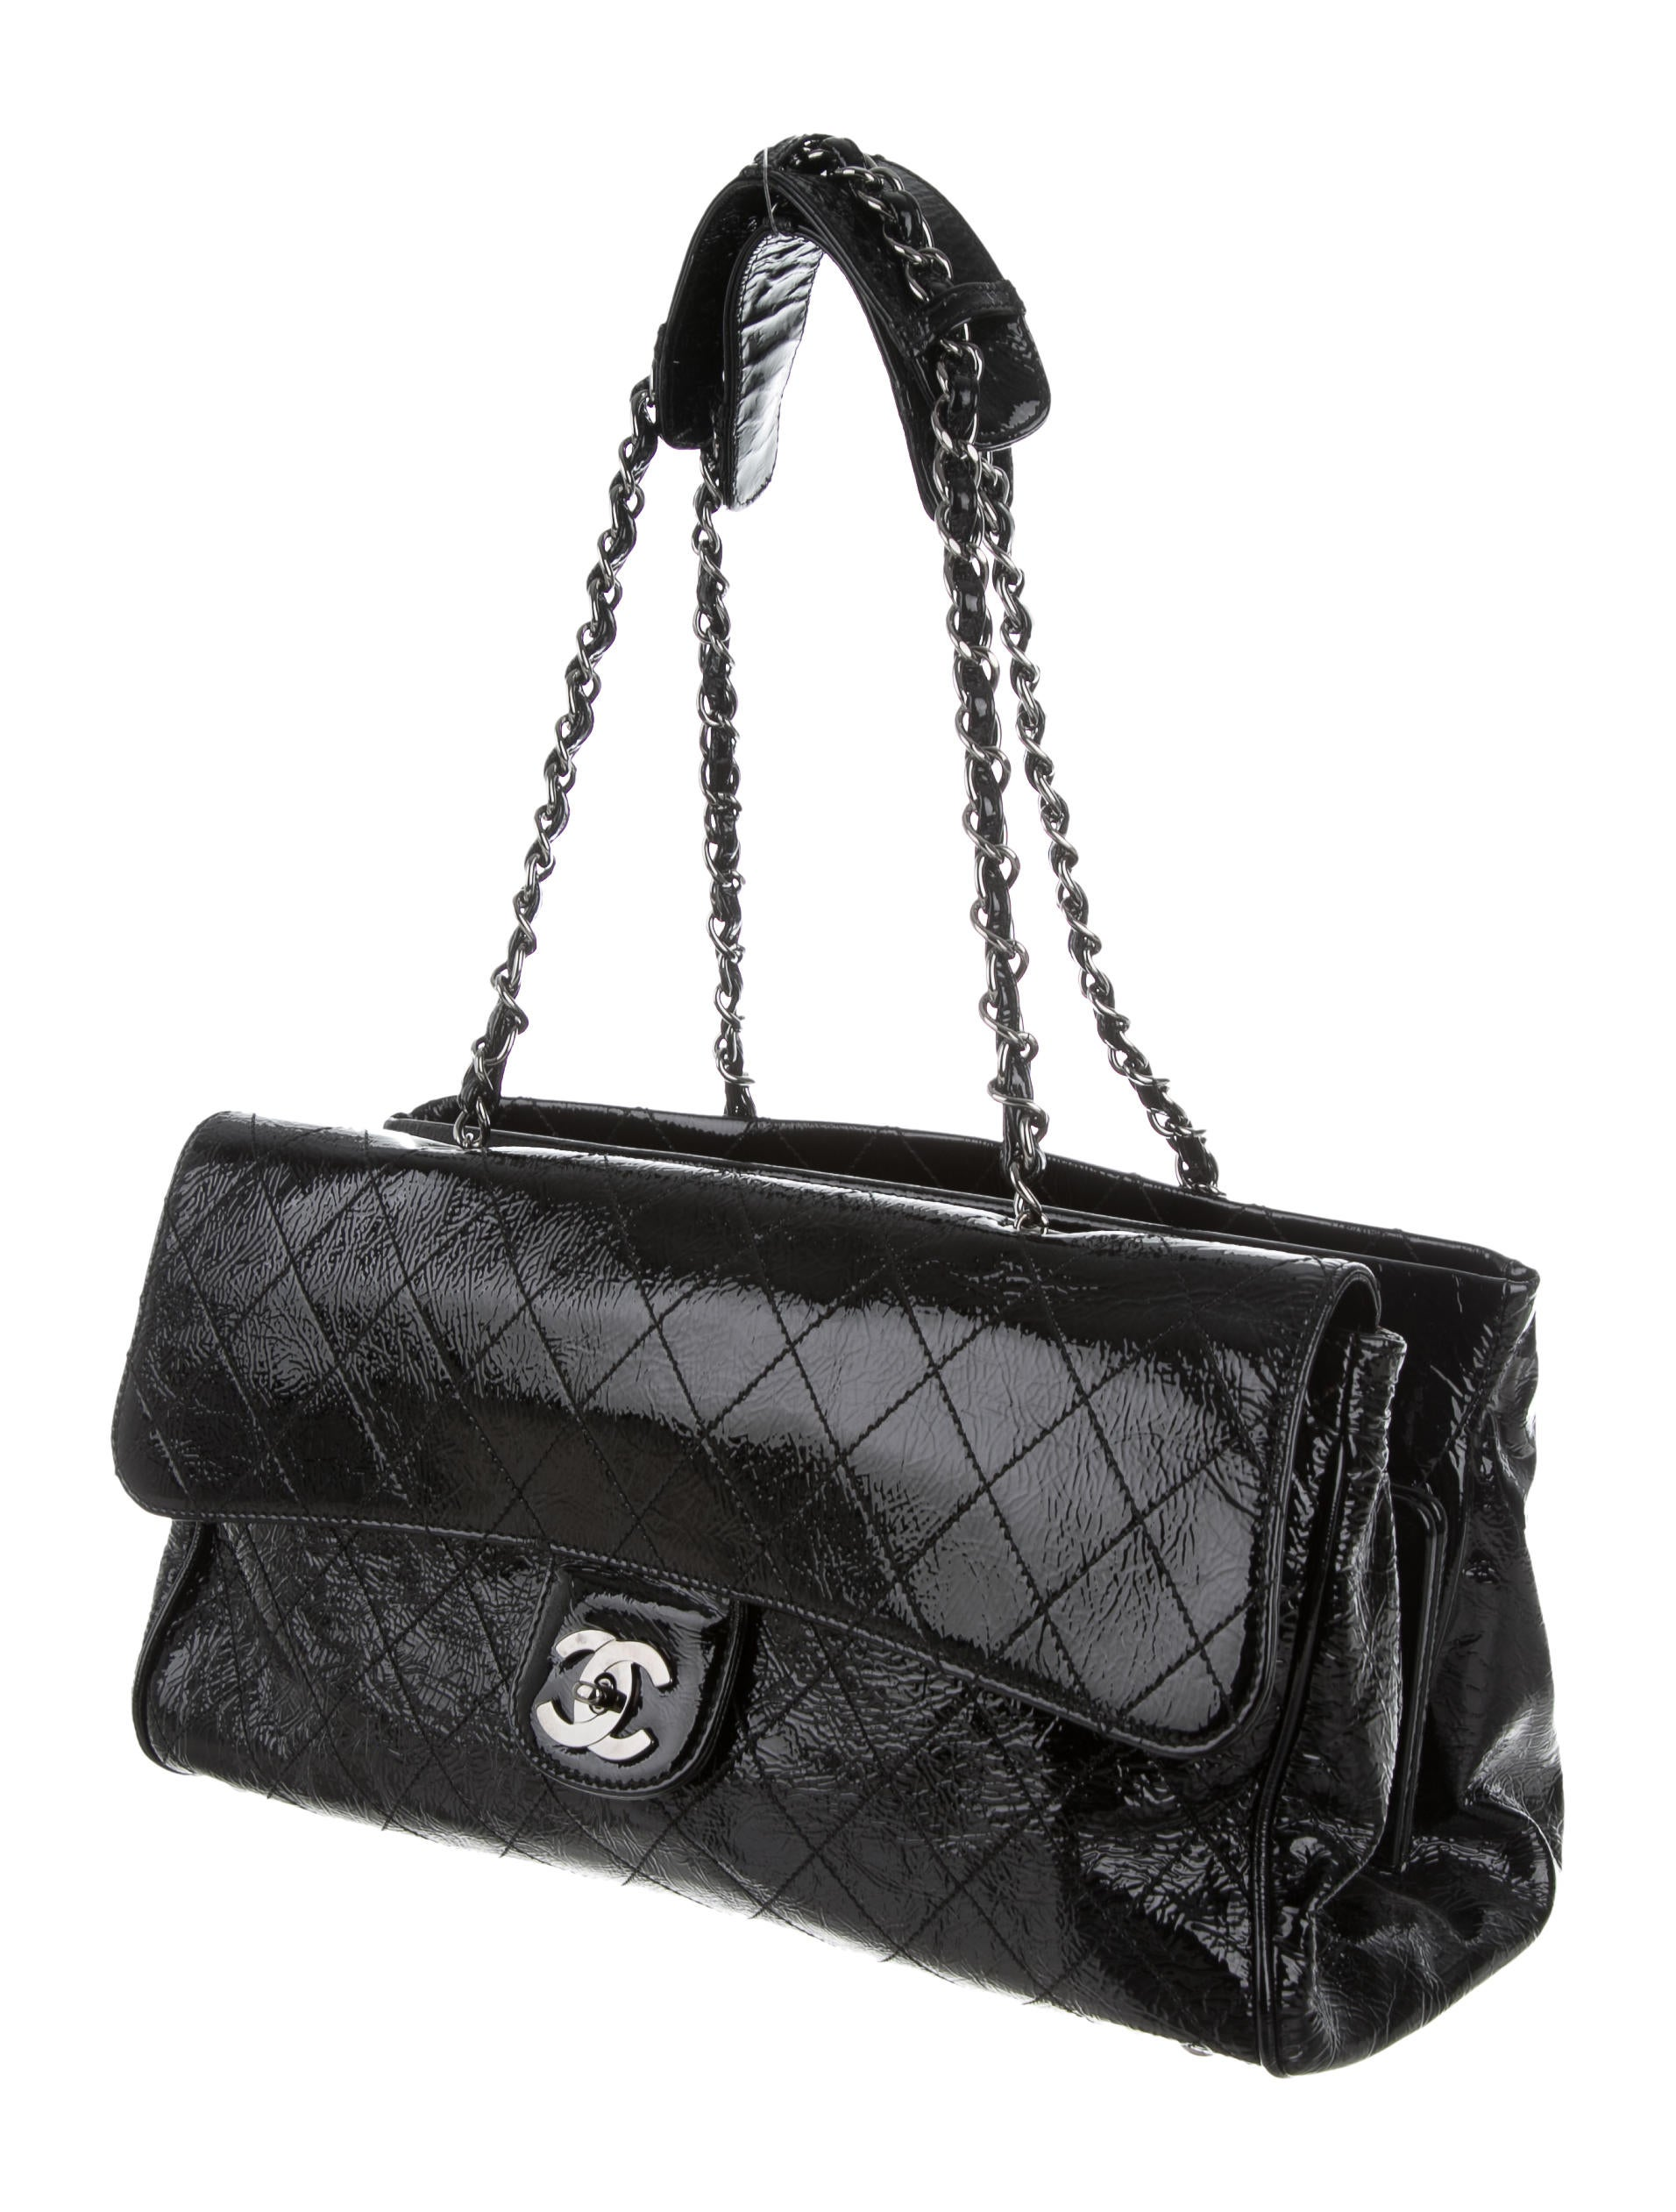 643d06cc95b1 Chanel Patent Leather Handbags | Stanford Center for Opportunity ...